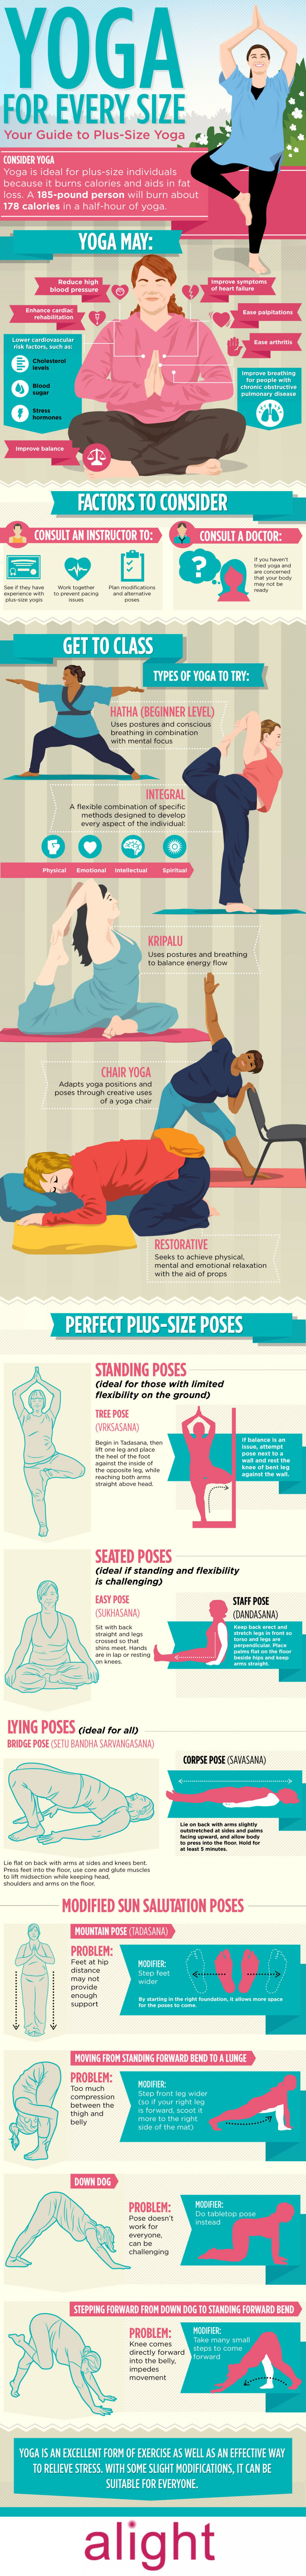 guide to plus size yoga